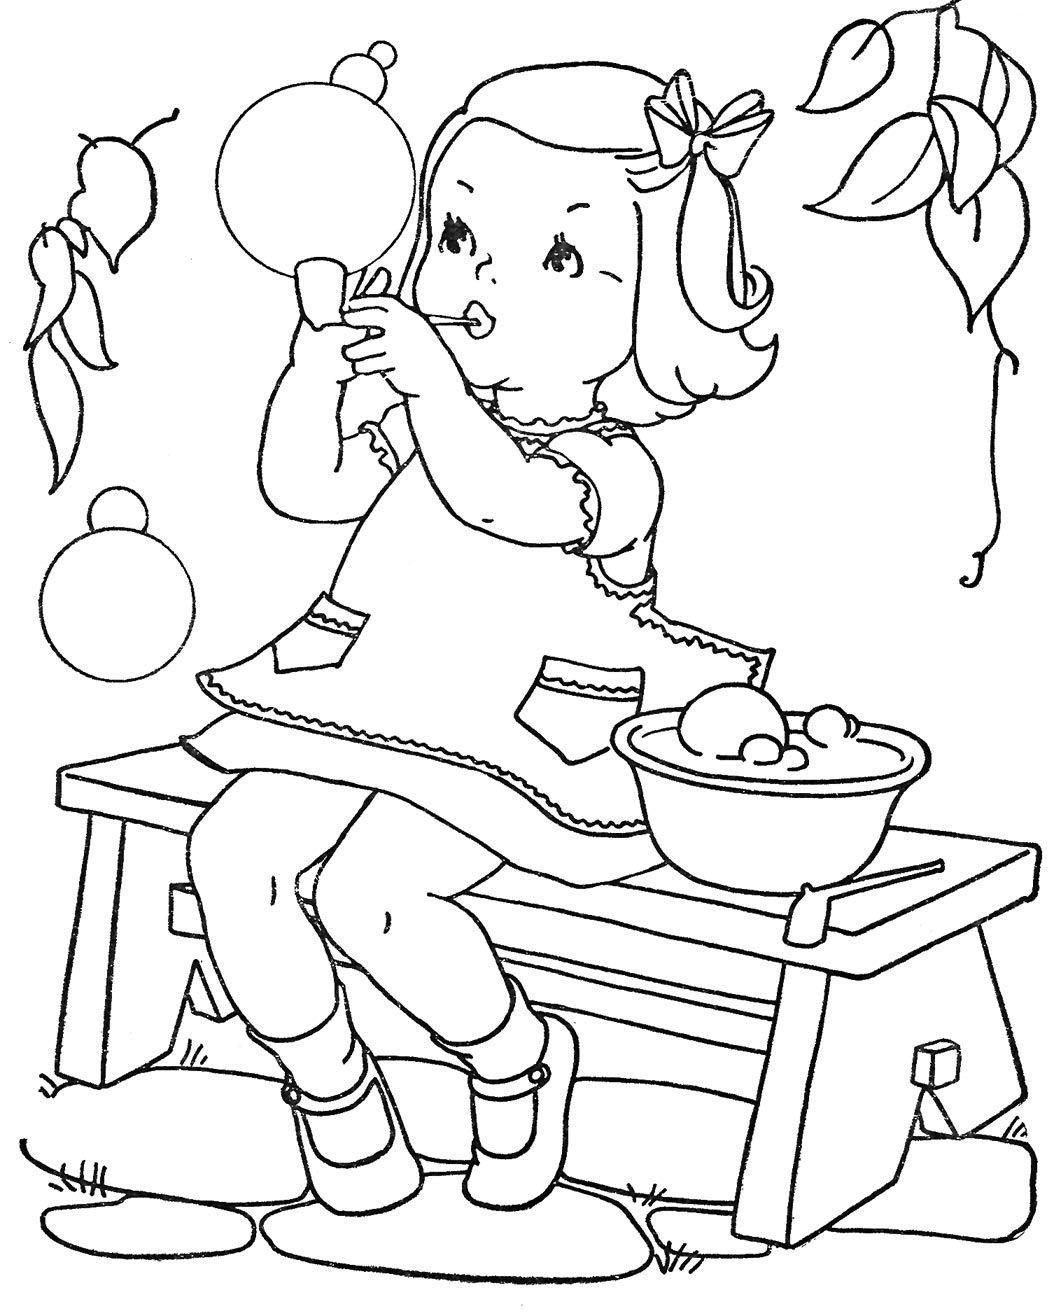 20 vintage coloring book images free to print maybe use for homemade paint with - Paint Coloring